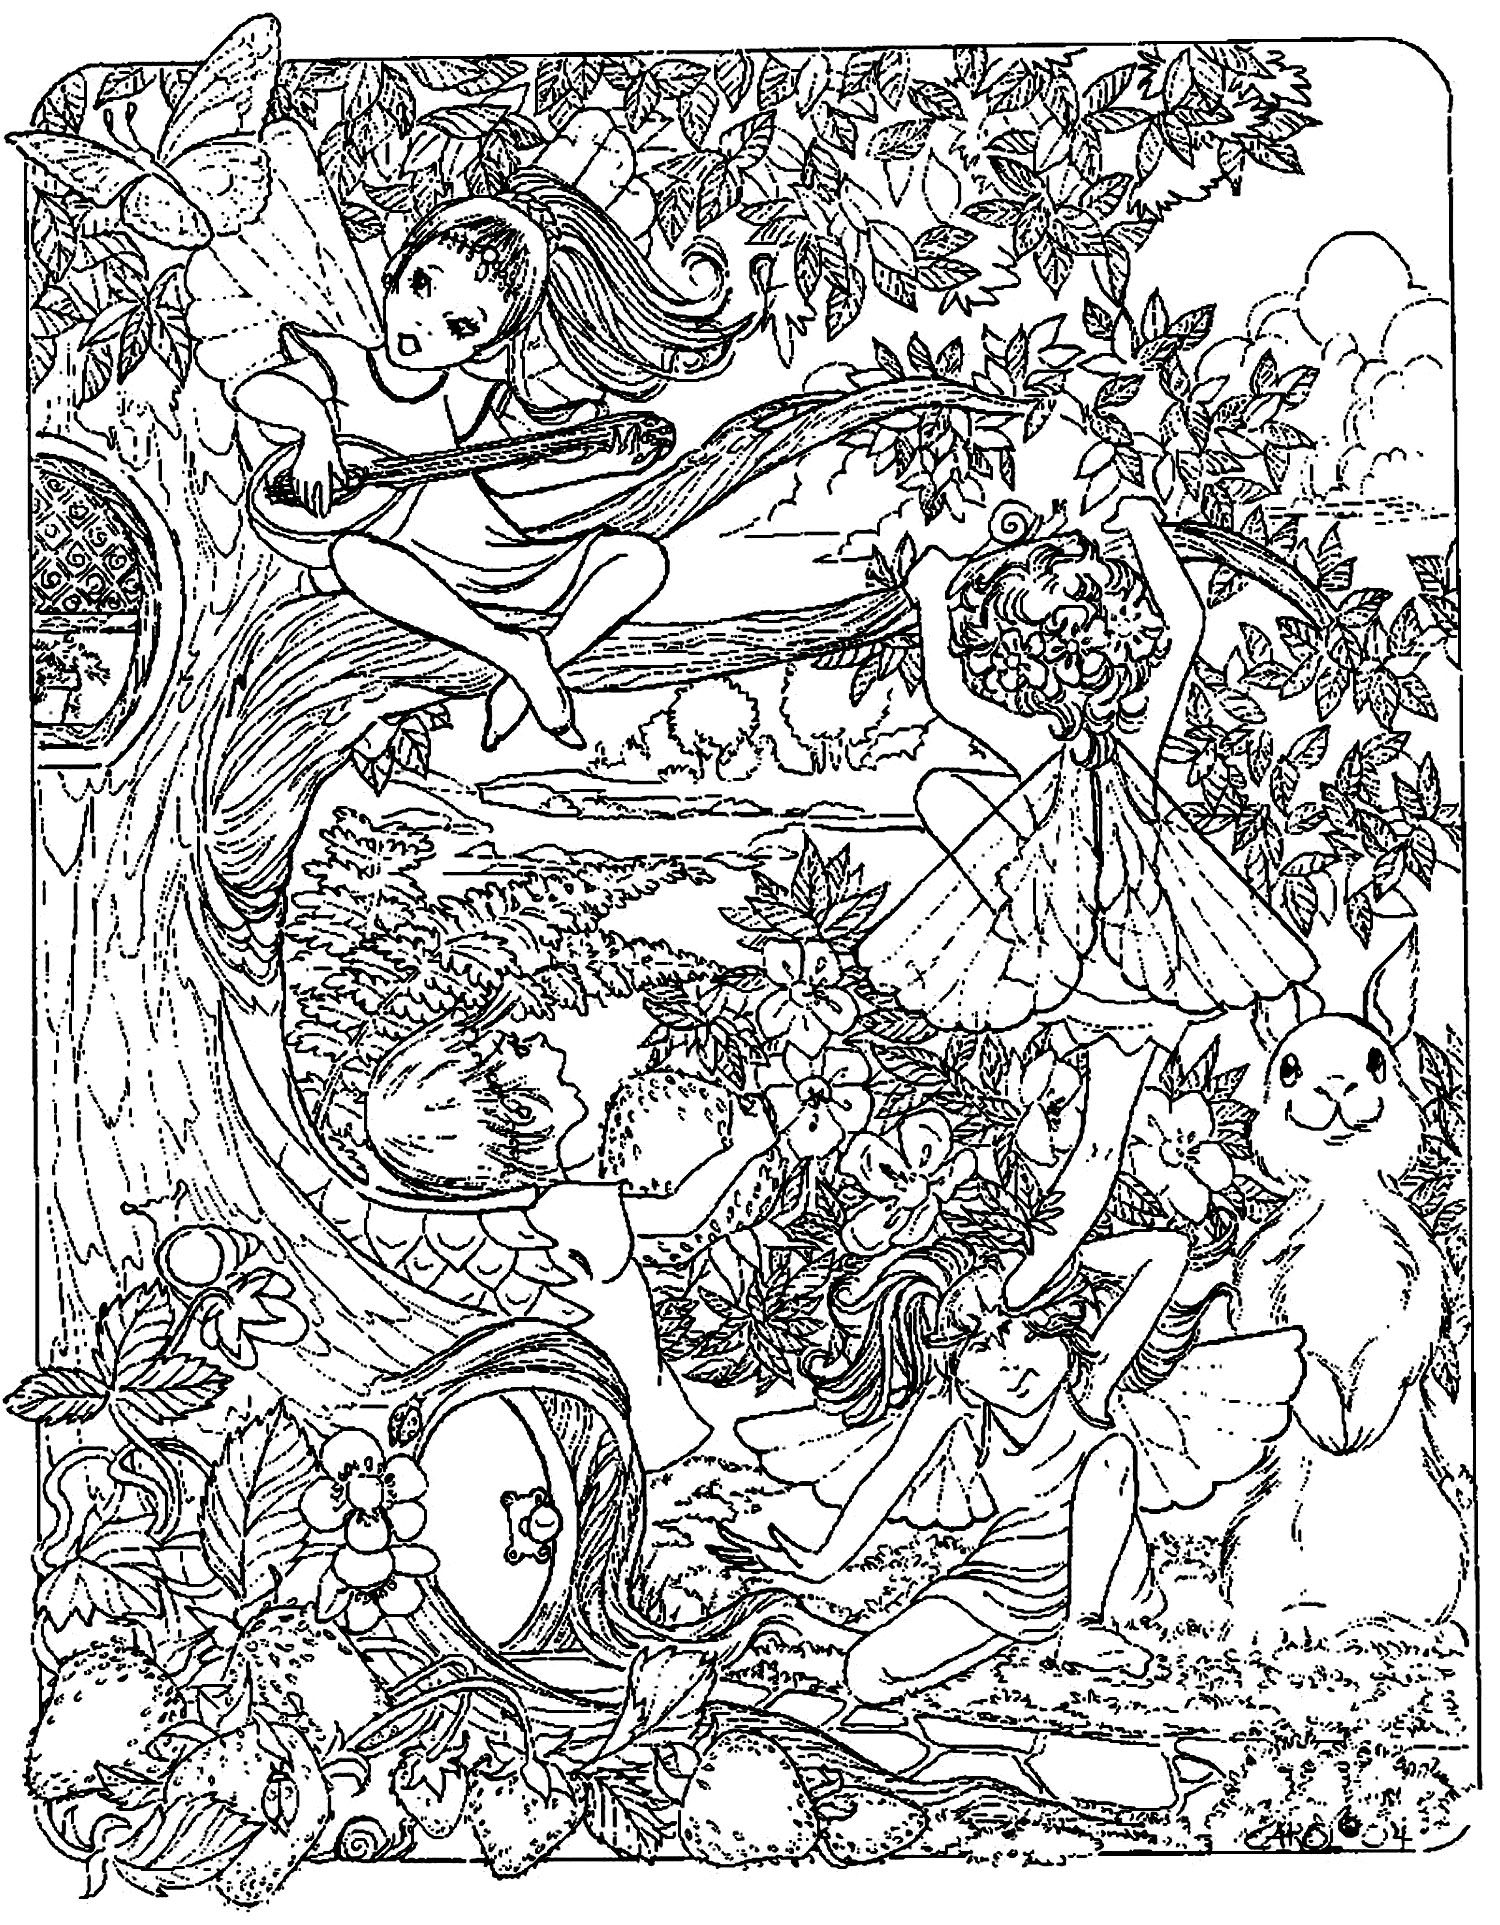 Child Elves With Tree And Animals Lot Of Details From The Gallery Myths Legends Halloween Coloring Book Coloring Pages Coloring Books